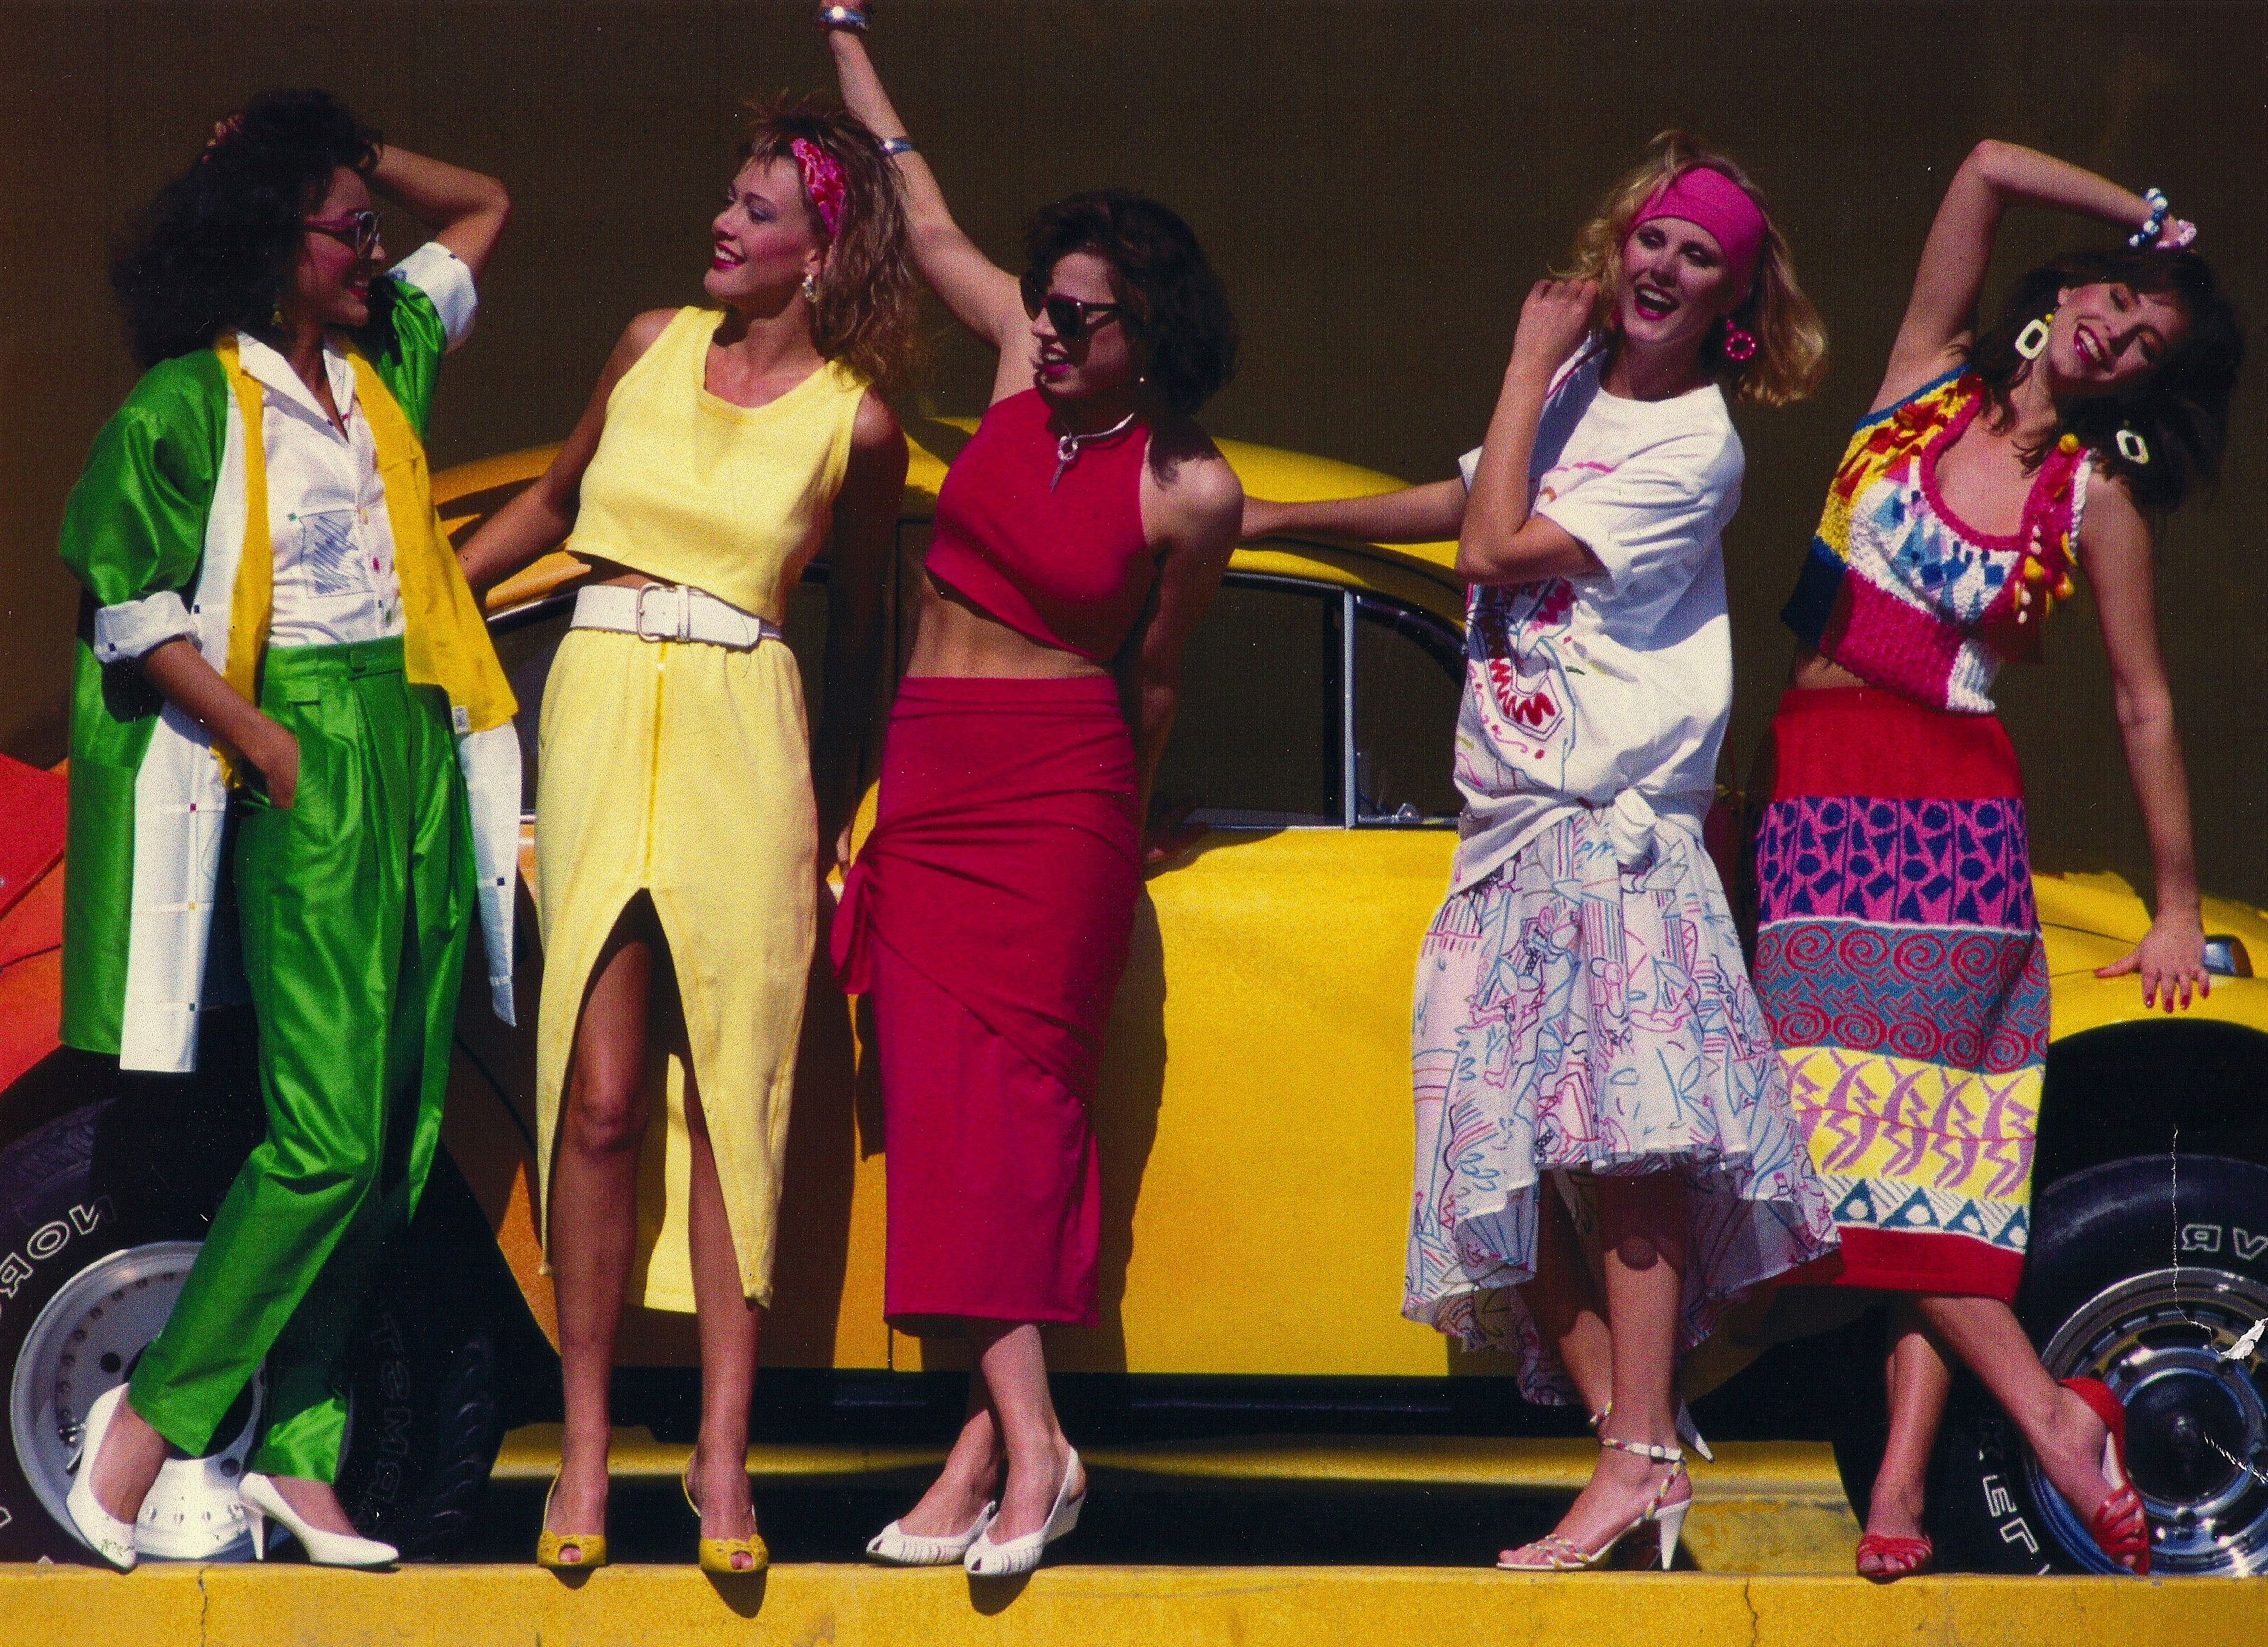 Eighties Fashion 80s Clothing